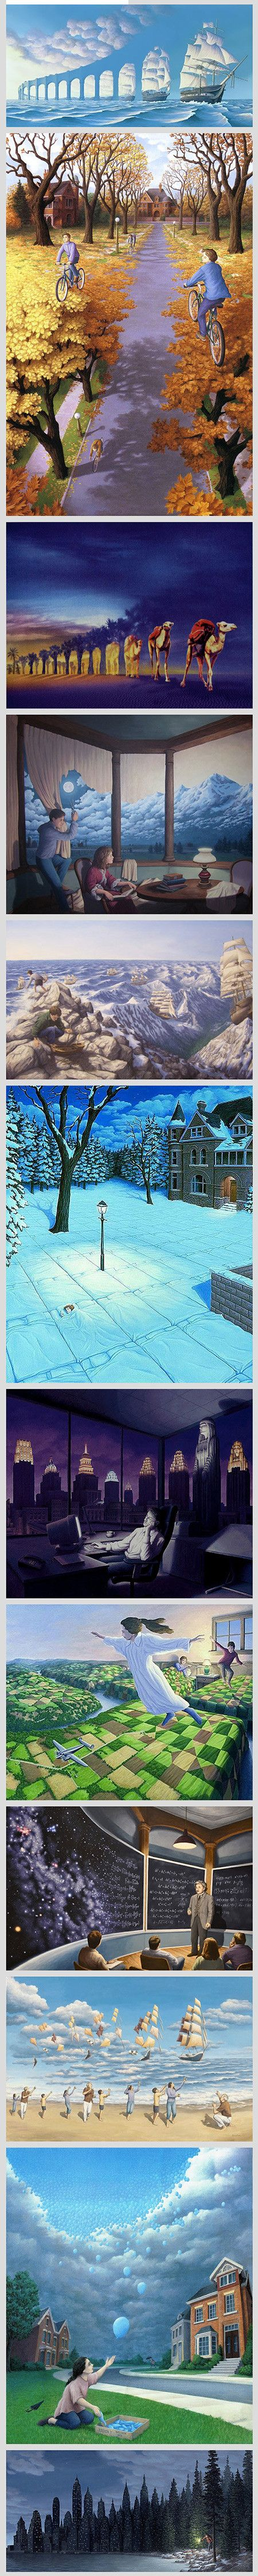 Magic & realism – the two don't really match, do they? But Rob Gonsalves, a Canadian painter of magic realism, demonstrates great skills in merging the two different worlds in his unique and surrealistic optical illusion artworks. Inspired by such great artists as Dali, Tanguy, Magritte and Escher, Gonsalves developed his own unique style by combining his architectural knowledge with the love for painting.